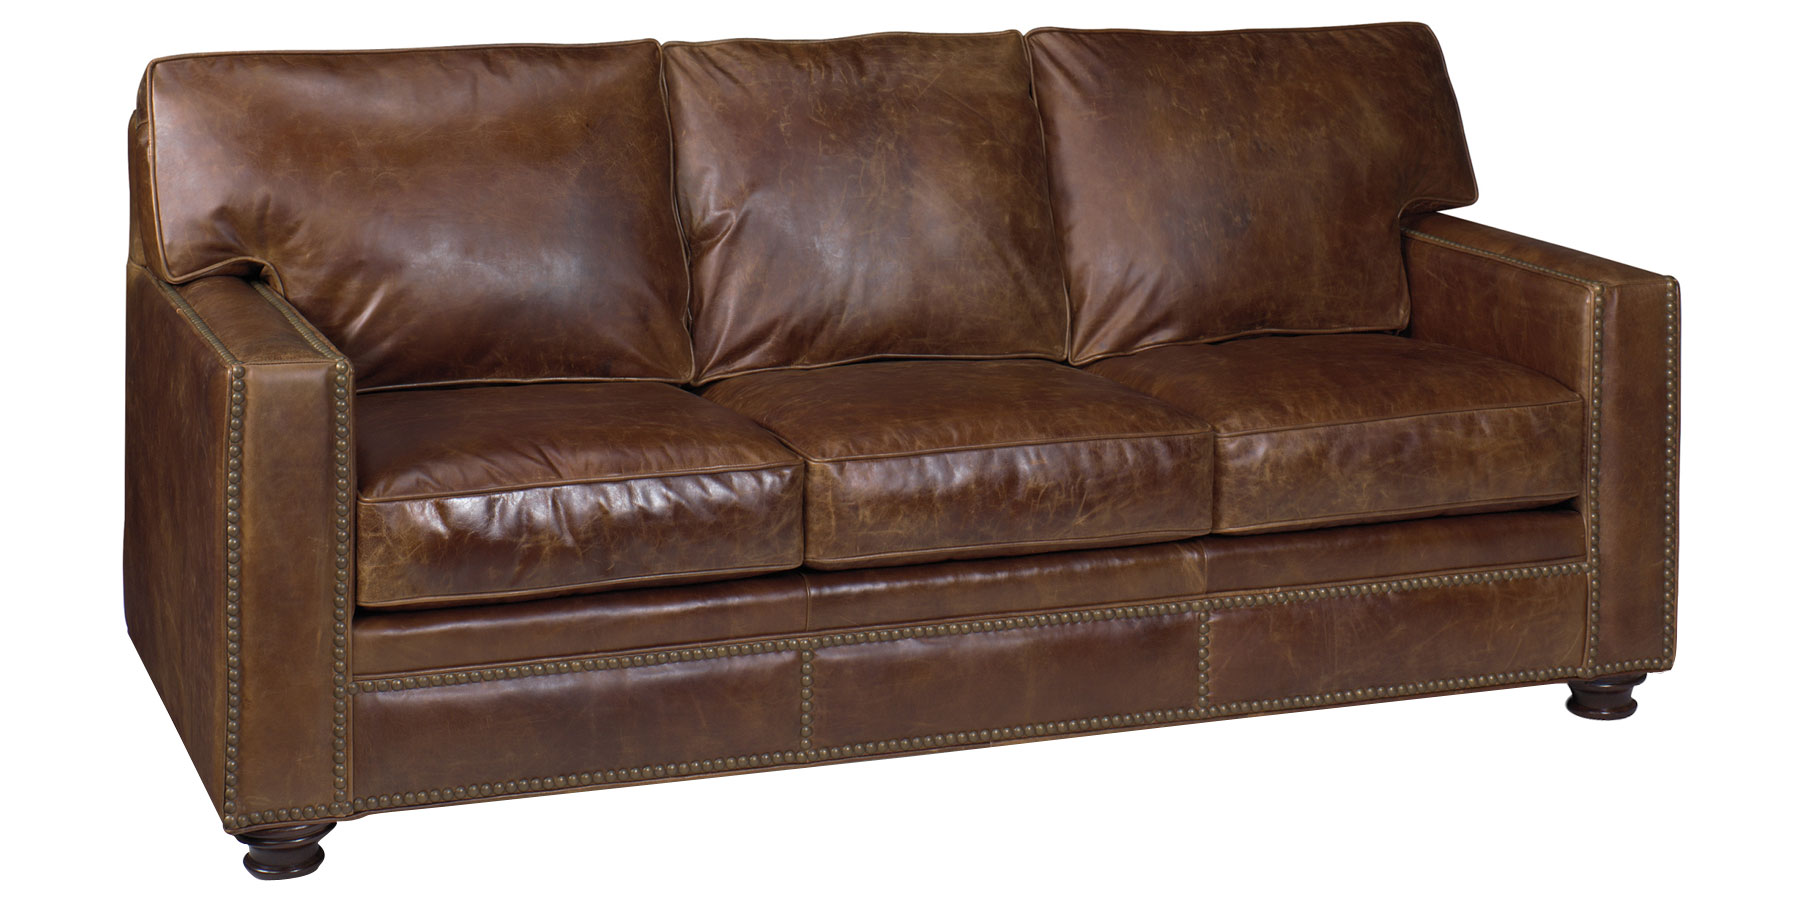 Leather Furniture Traveler Collection: Track Arm Rustic Leather Furniture Collection